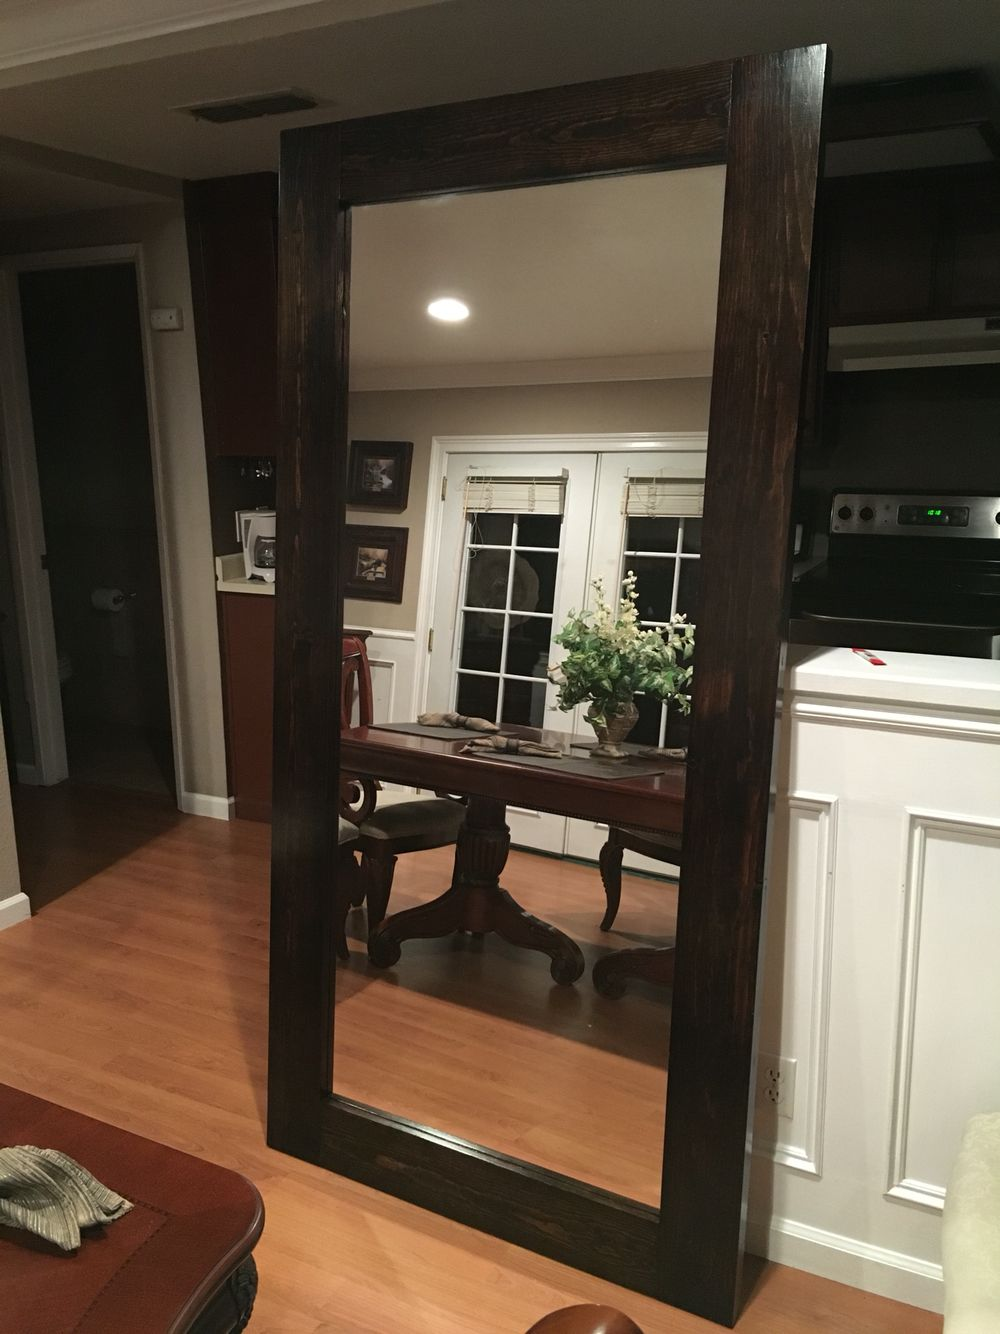 DIY large standing floor mirror from scrap wood and old